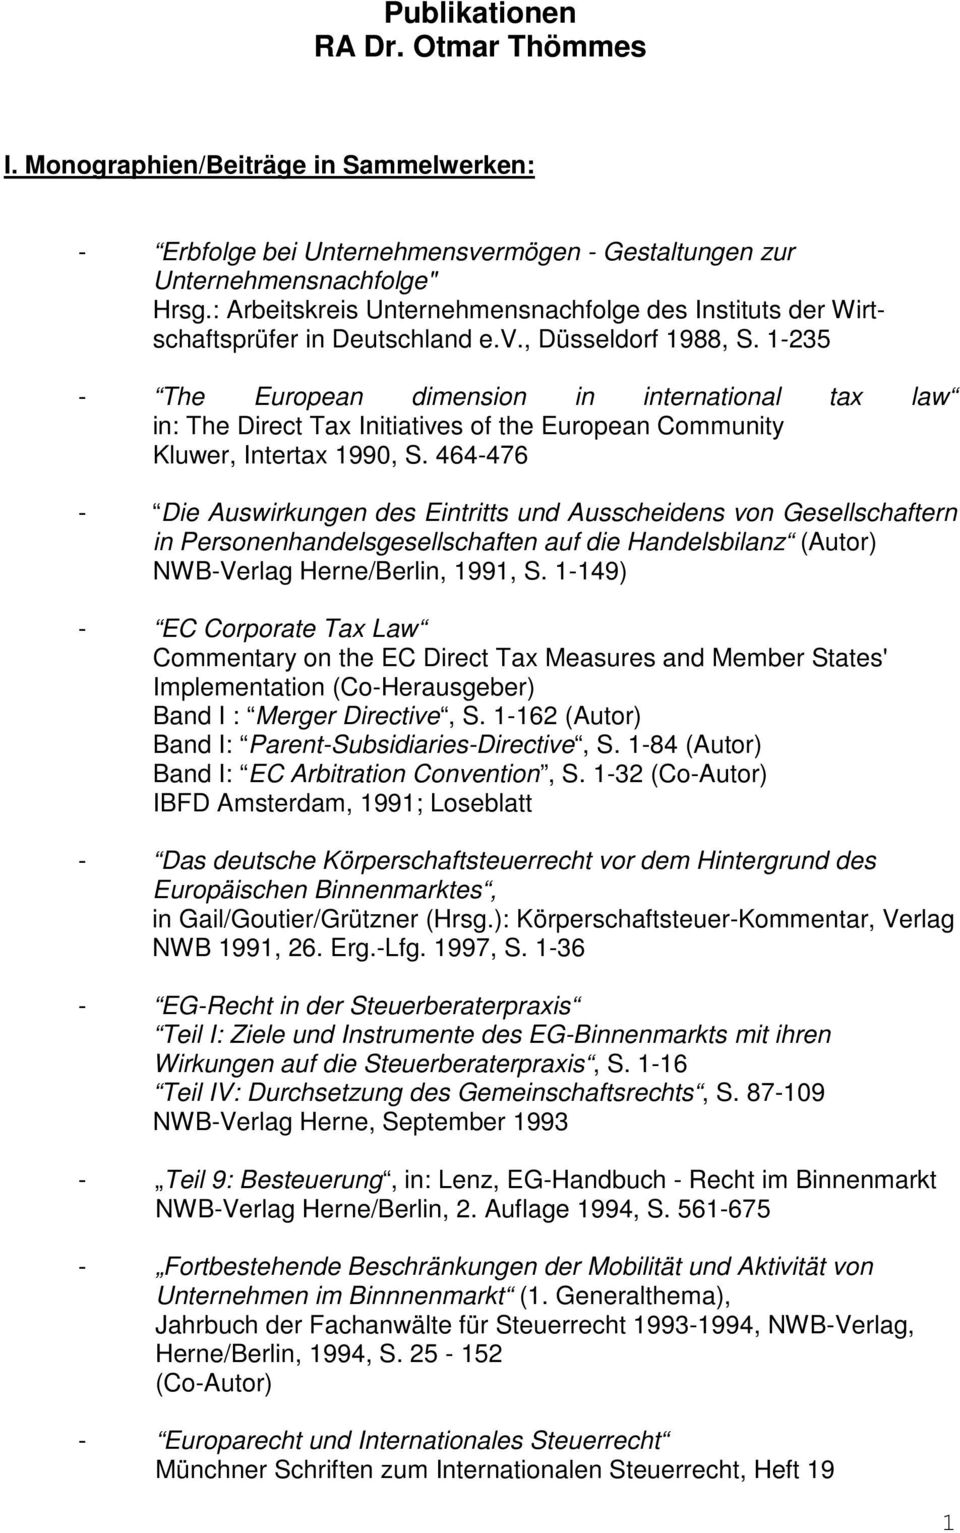 1-235 - The European dimension in international tax law in: The Direct Tax Initiatives of the European Community Kluwer, Intertax 1990, S.